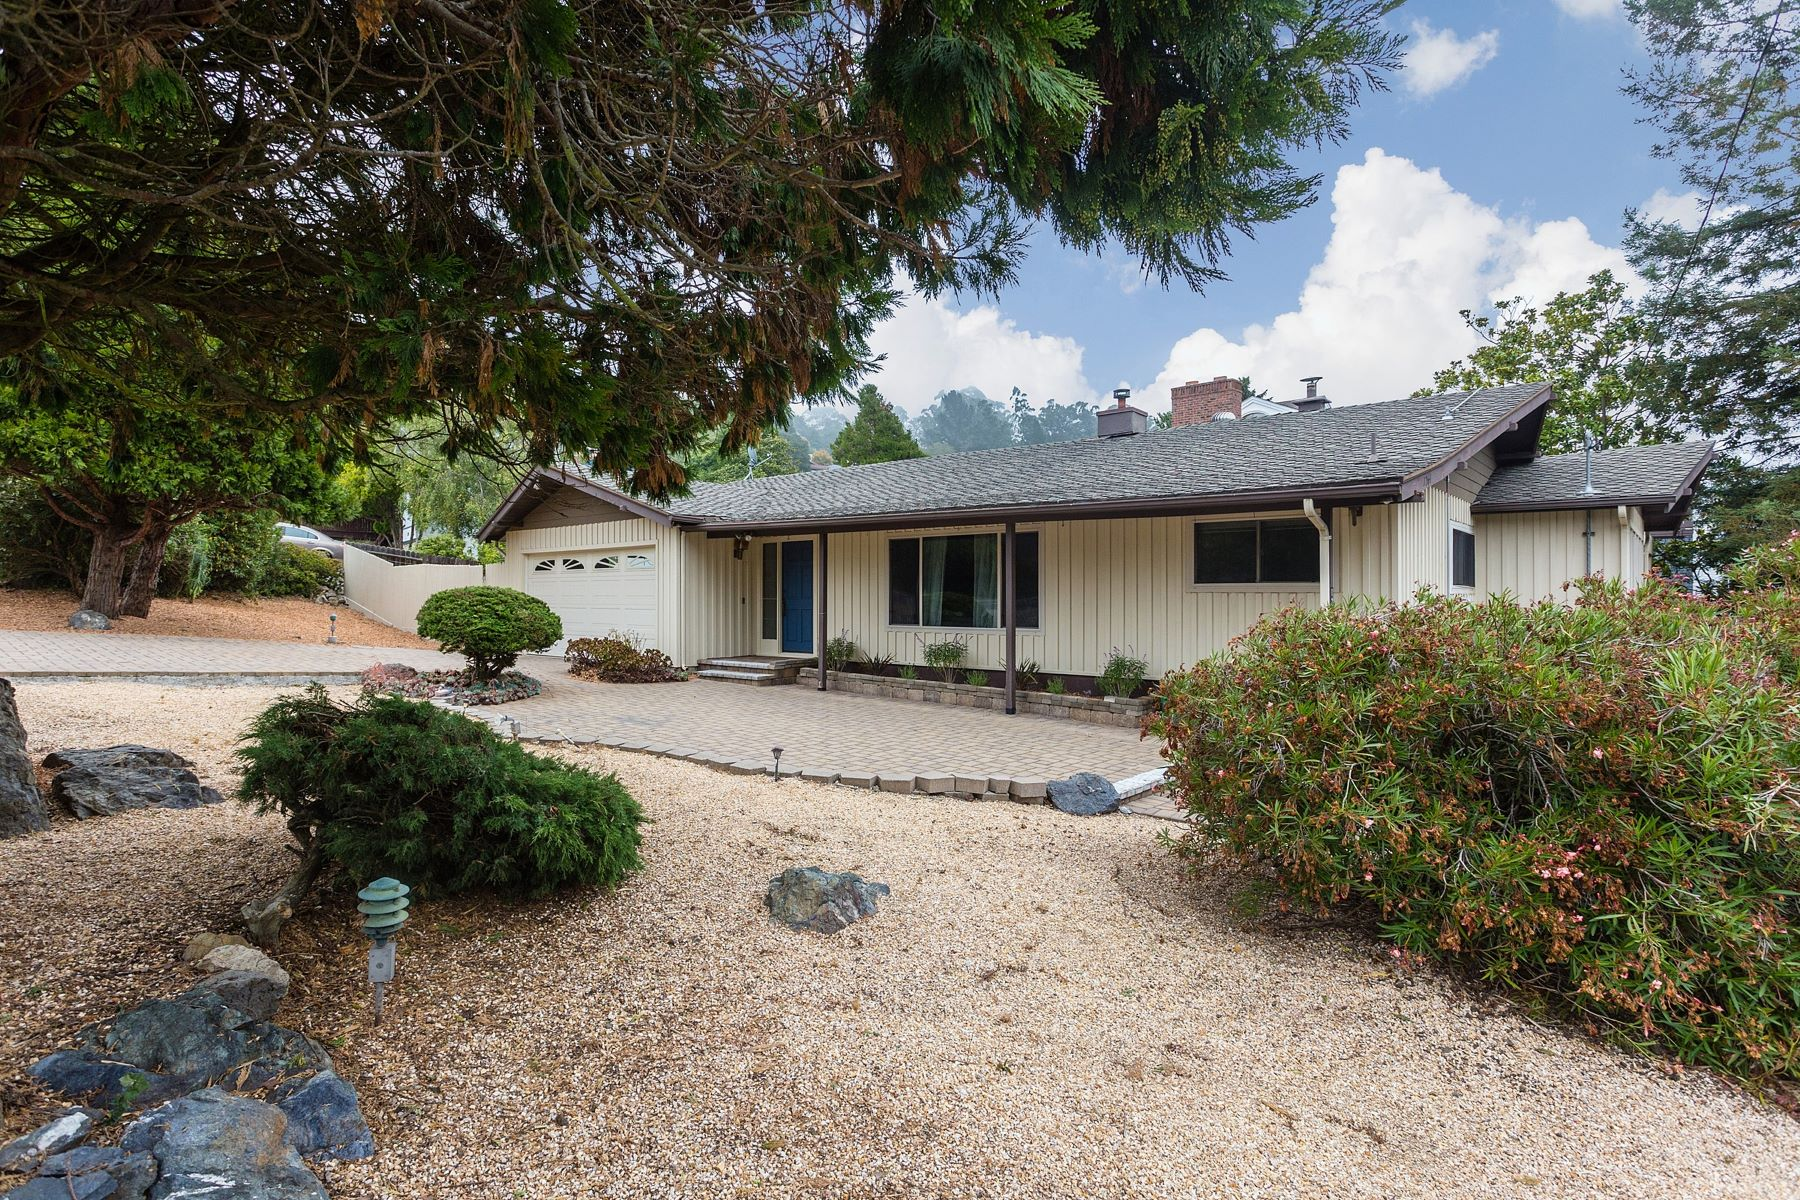 Single Family Home for Sale at Level-In Mid Century Home 1264 Arlington Boulevard El Cerrito, California 94530 United States